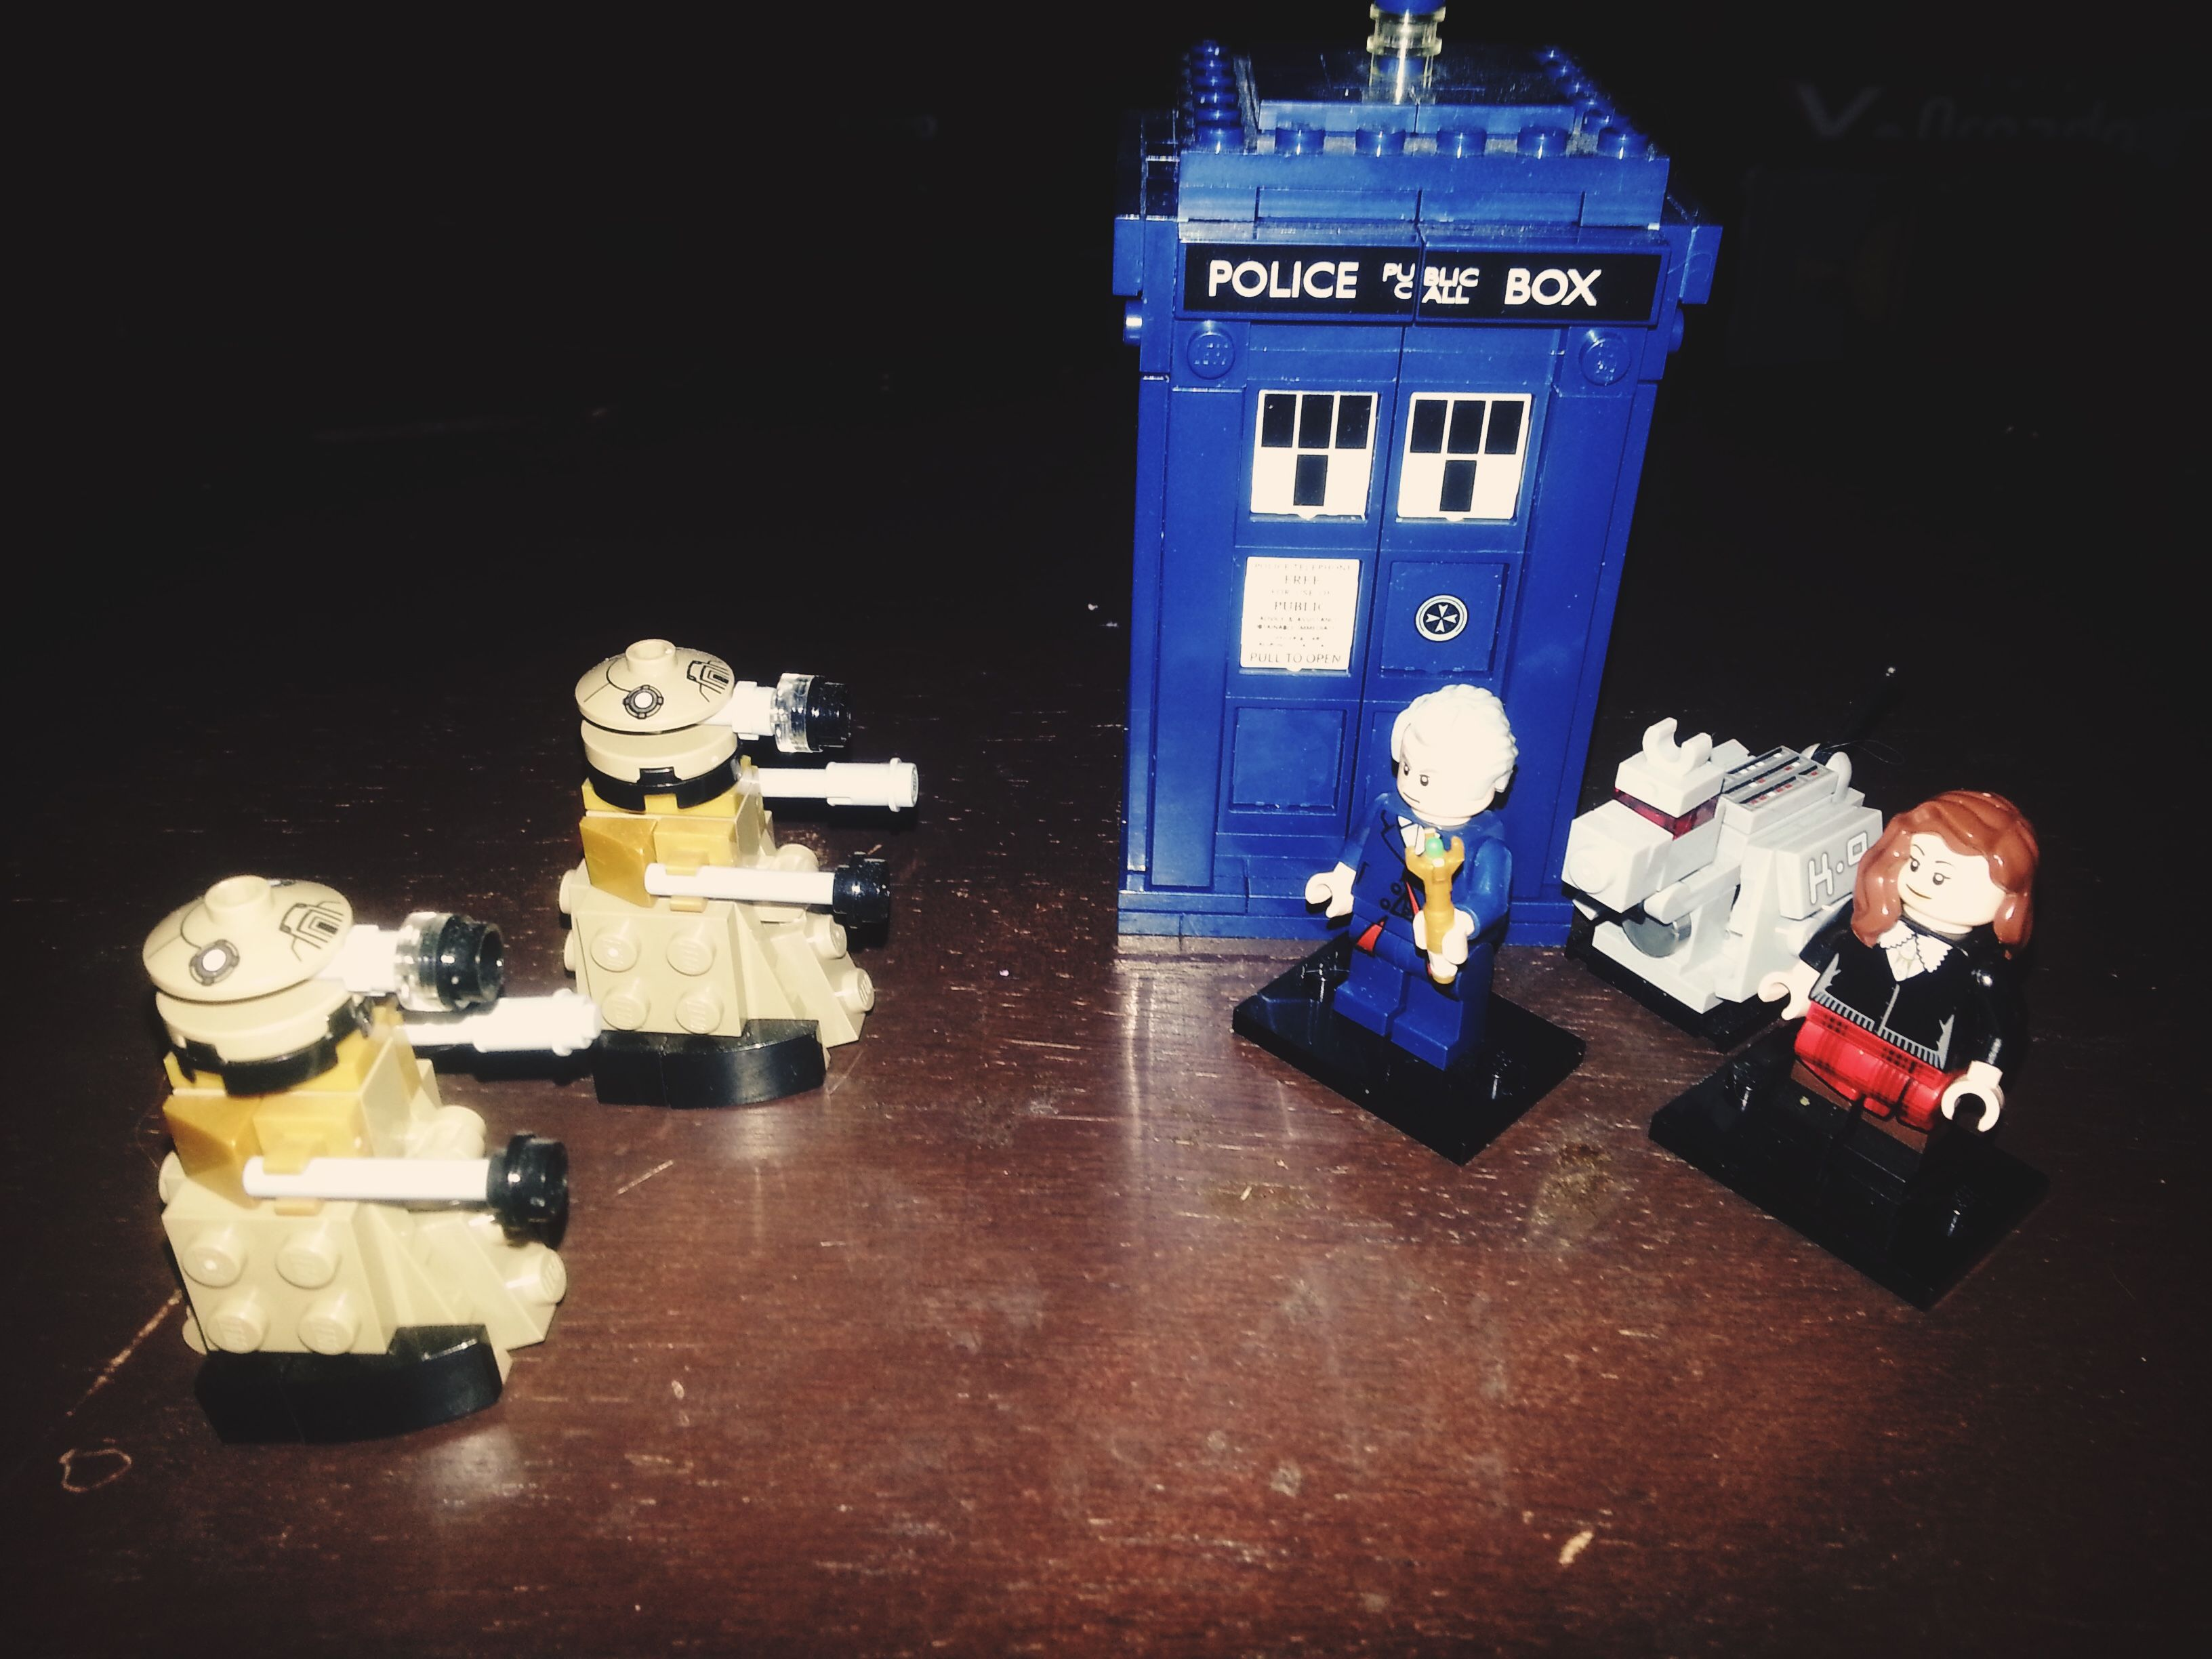 Lego Doctor Who The outside of the TARDIS from Lego The model is